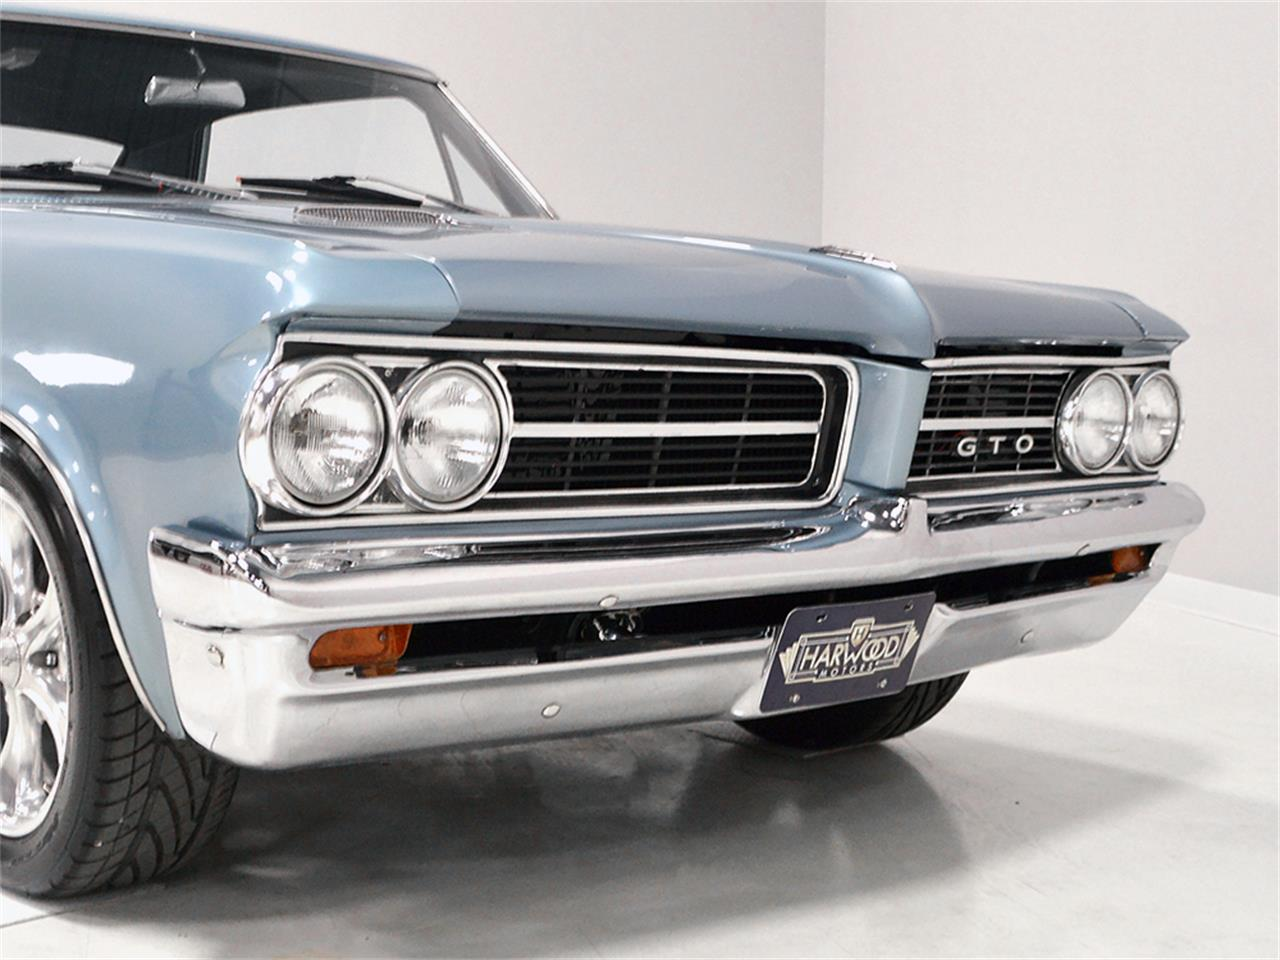 Large Picture of 1964 Pontiac GTO located in Ohio Offered by Harwood Motors, LTD. - MGNK